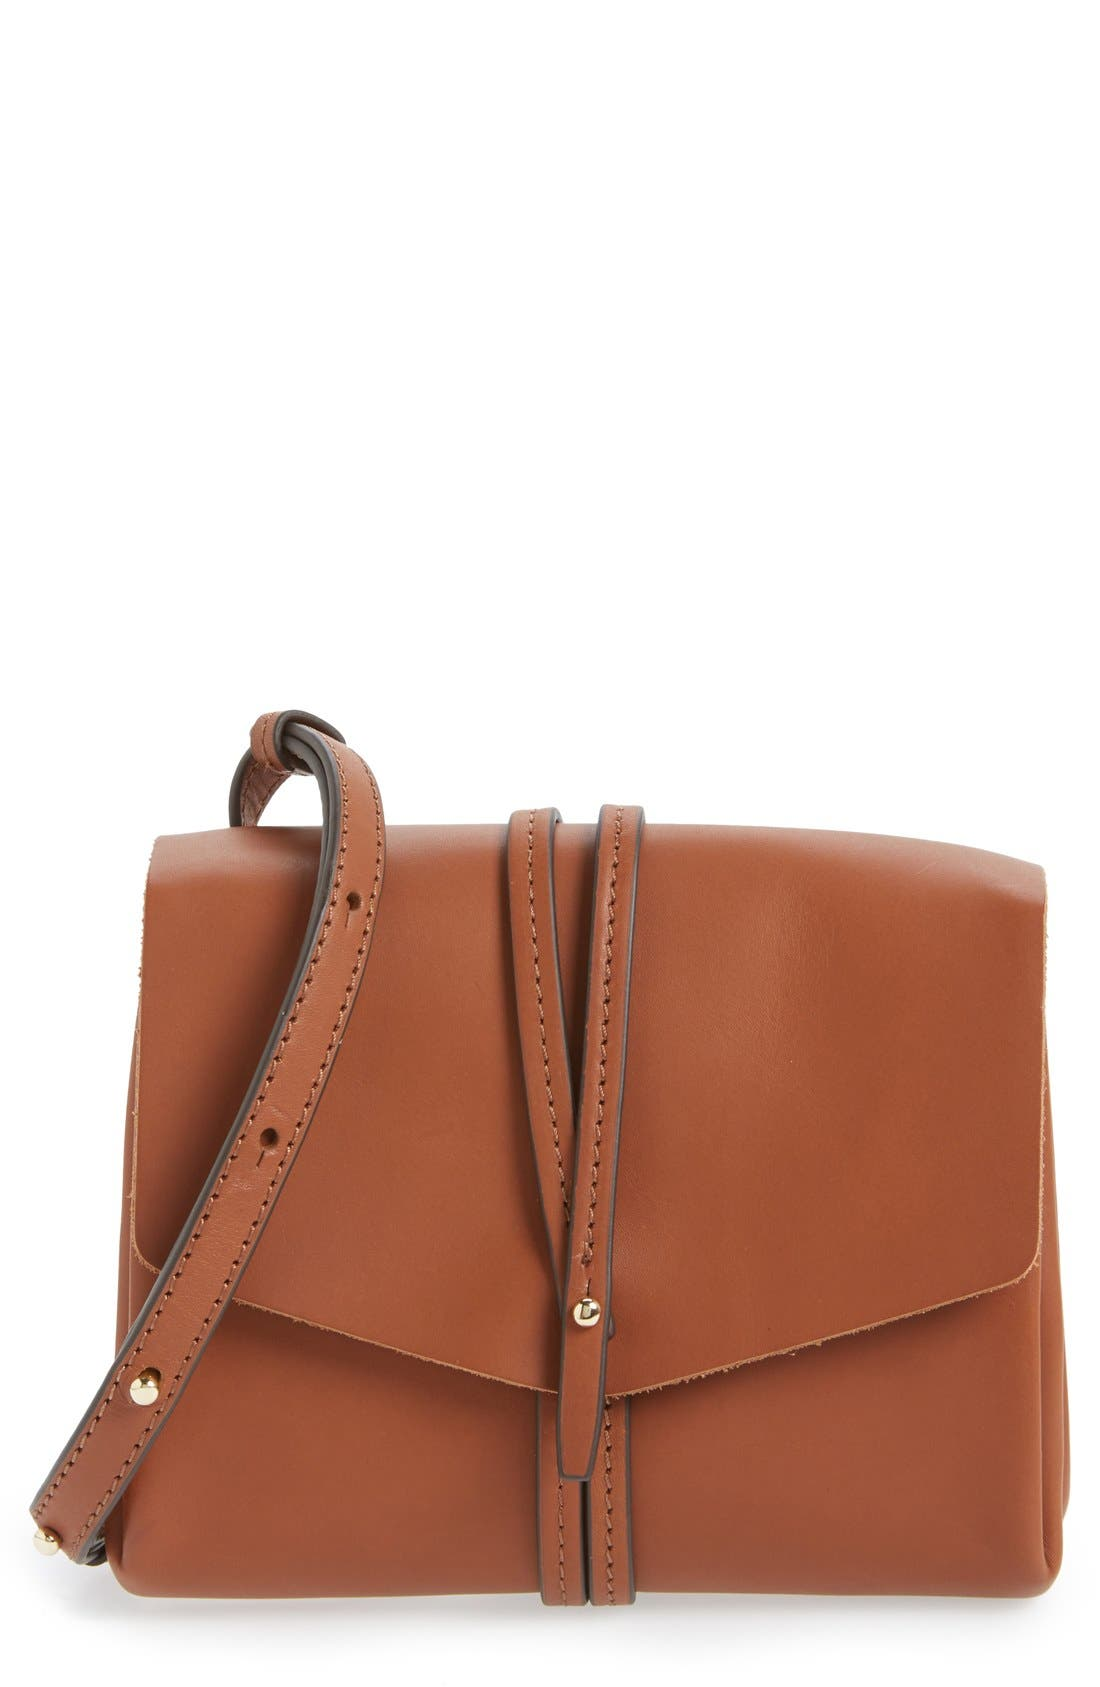 Alternate Image 1 Selected - Vince Camuto 'Tuck' Leather Crossbody Bag